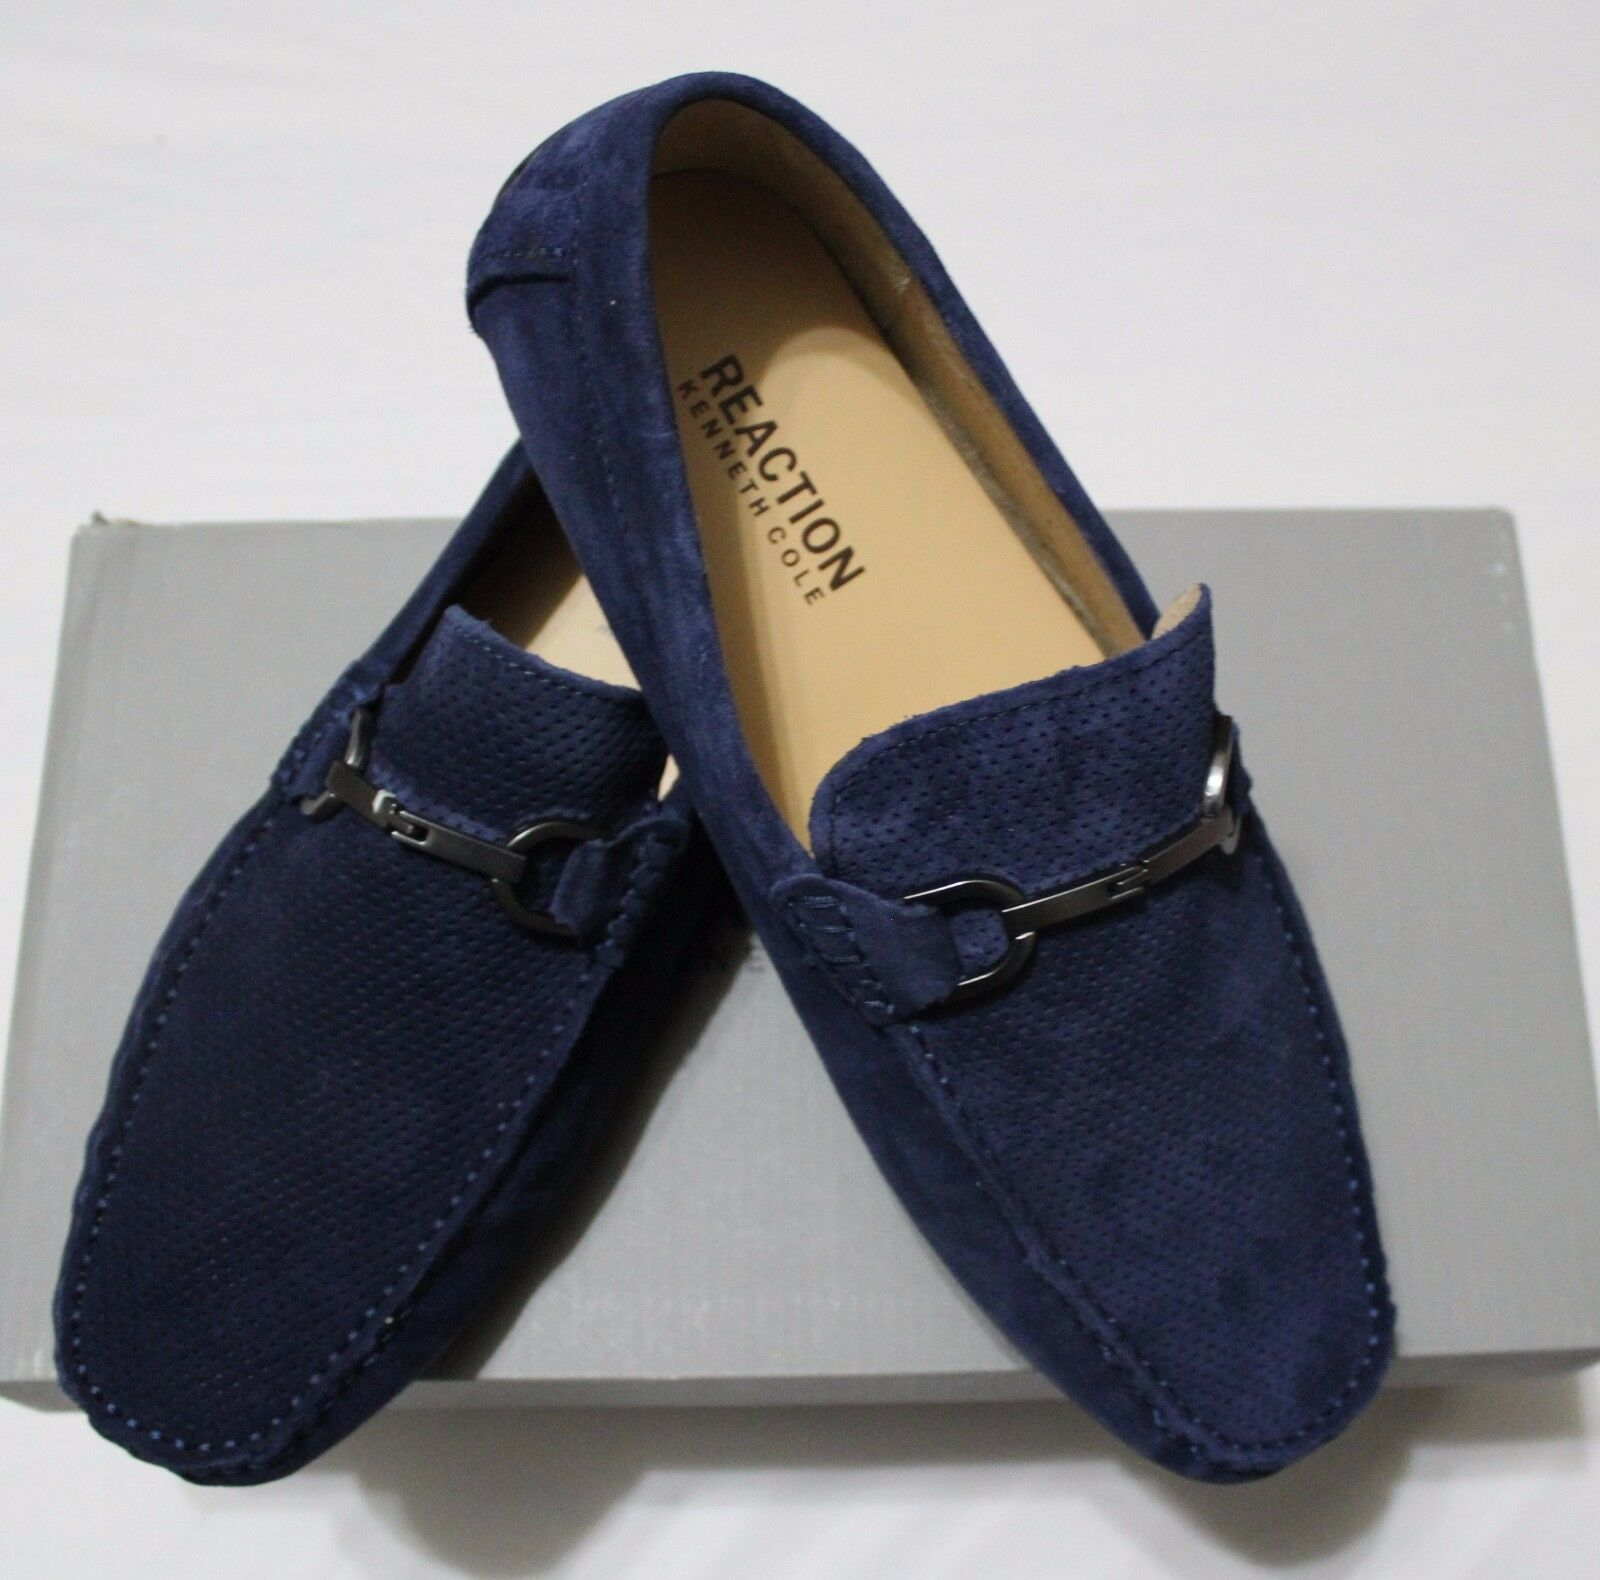 KENNETH COLE REACTION HERD THE WORD NAVY MOC DRIVING SHOES US 10M EU43 UK9.5